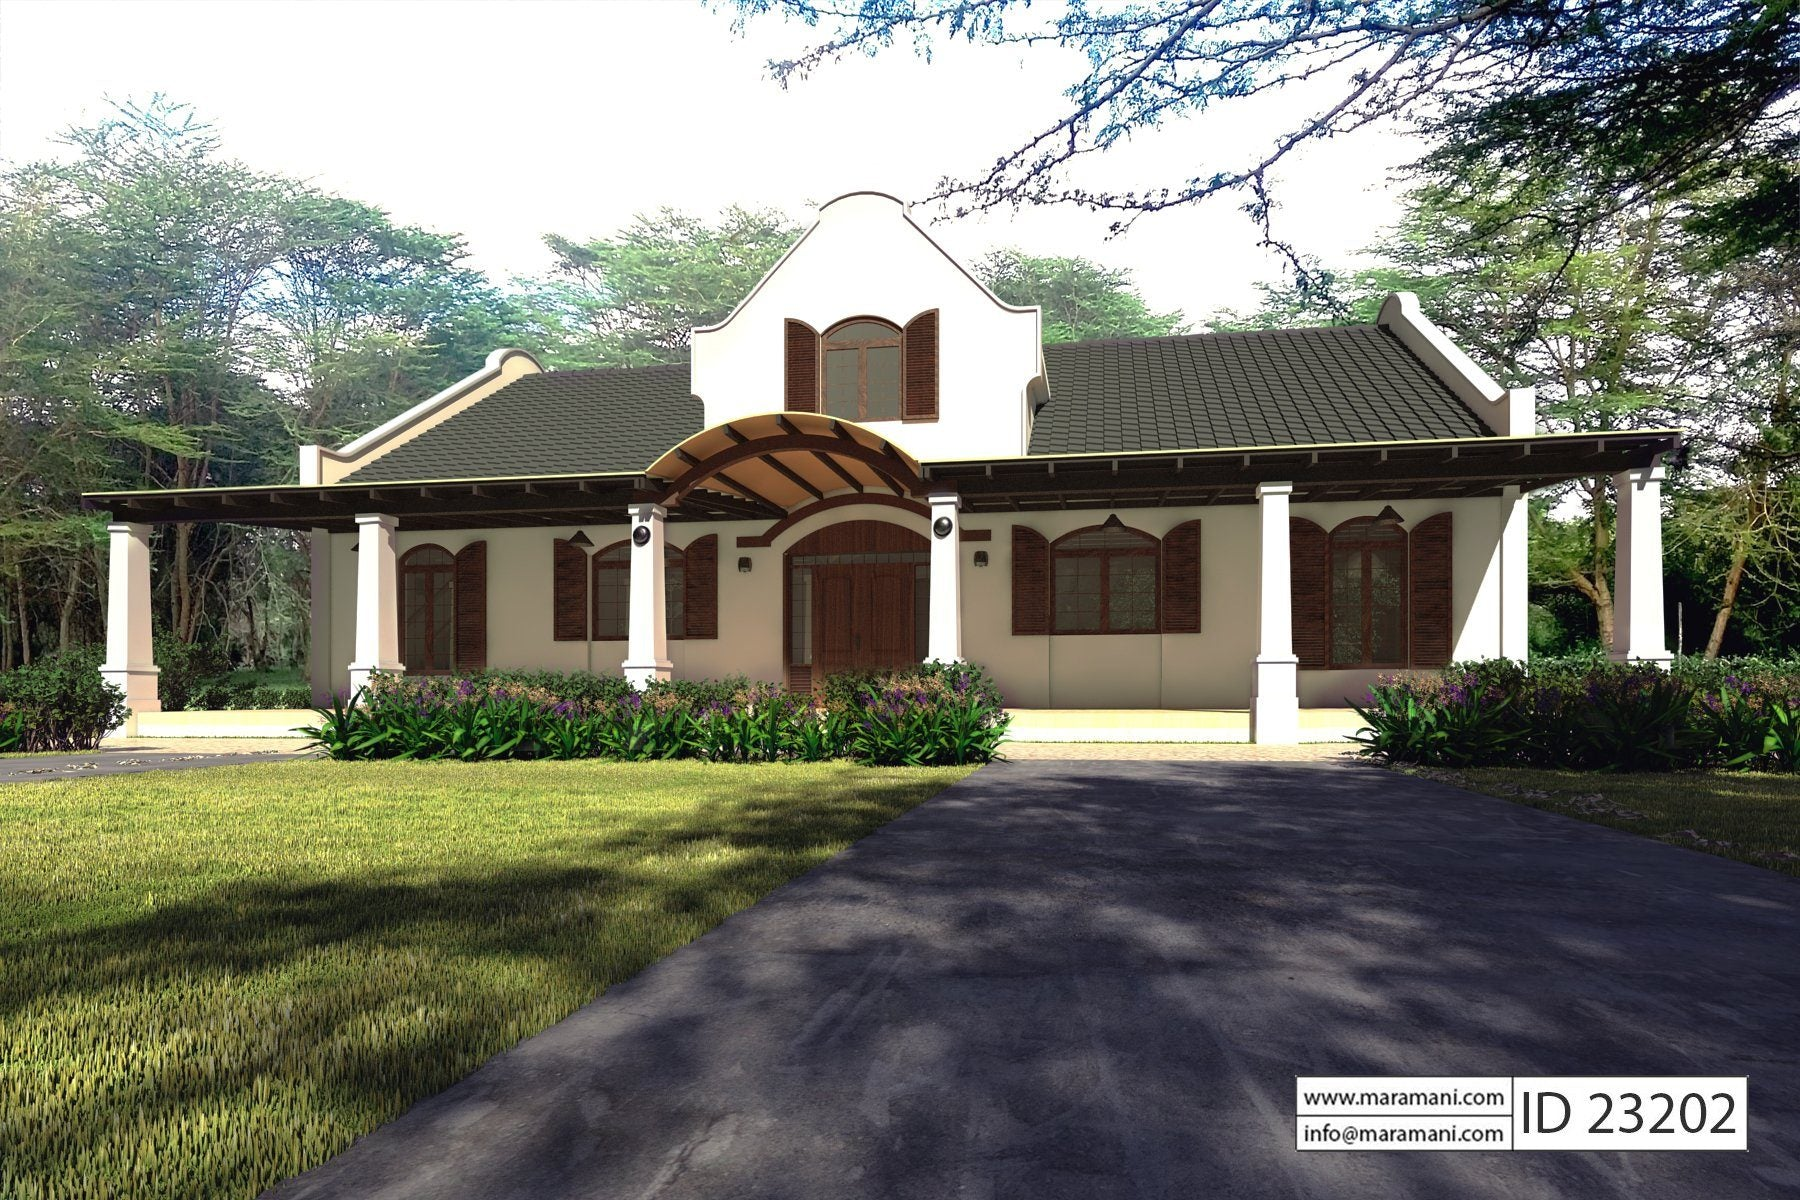 Inspiring cape dutch house plans south africa pictures for Dutch house